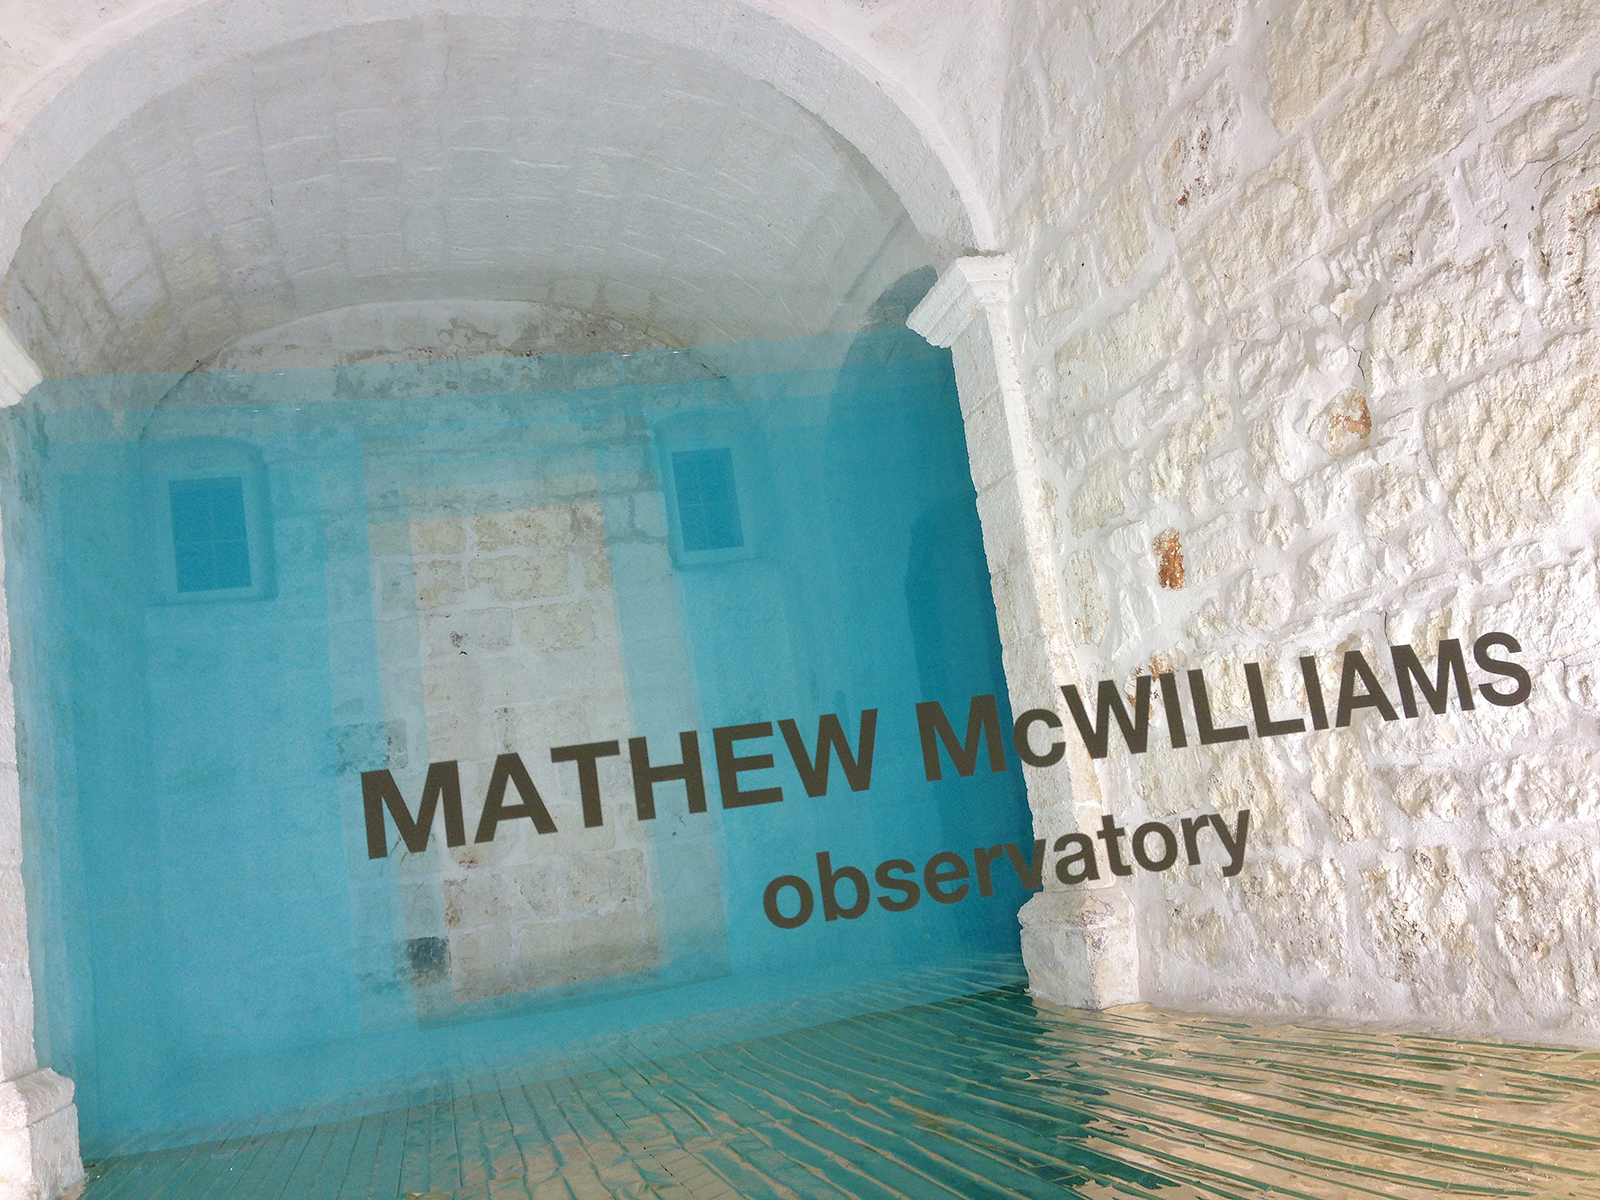 Mathew McWilliams, observatory